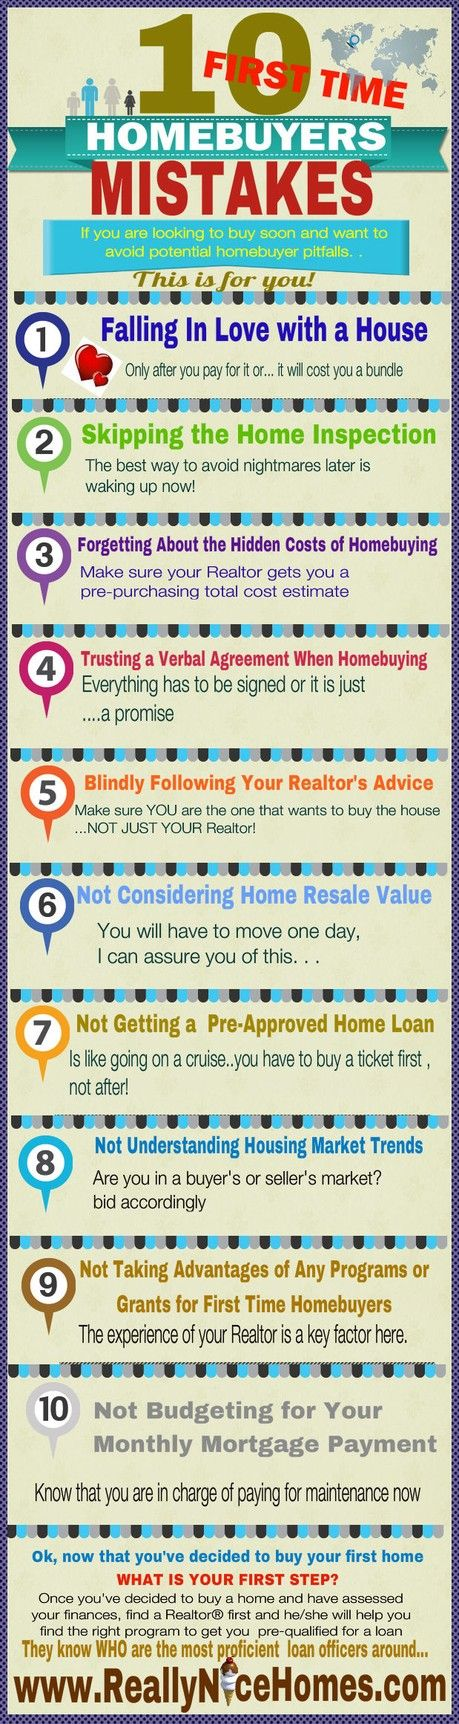 10 HUGE FIRST-TIME HOMEBUYER MISTAKES TO AVOID.